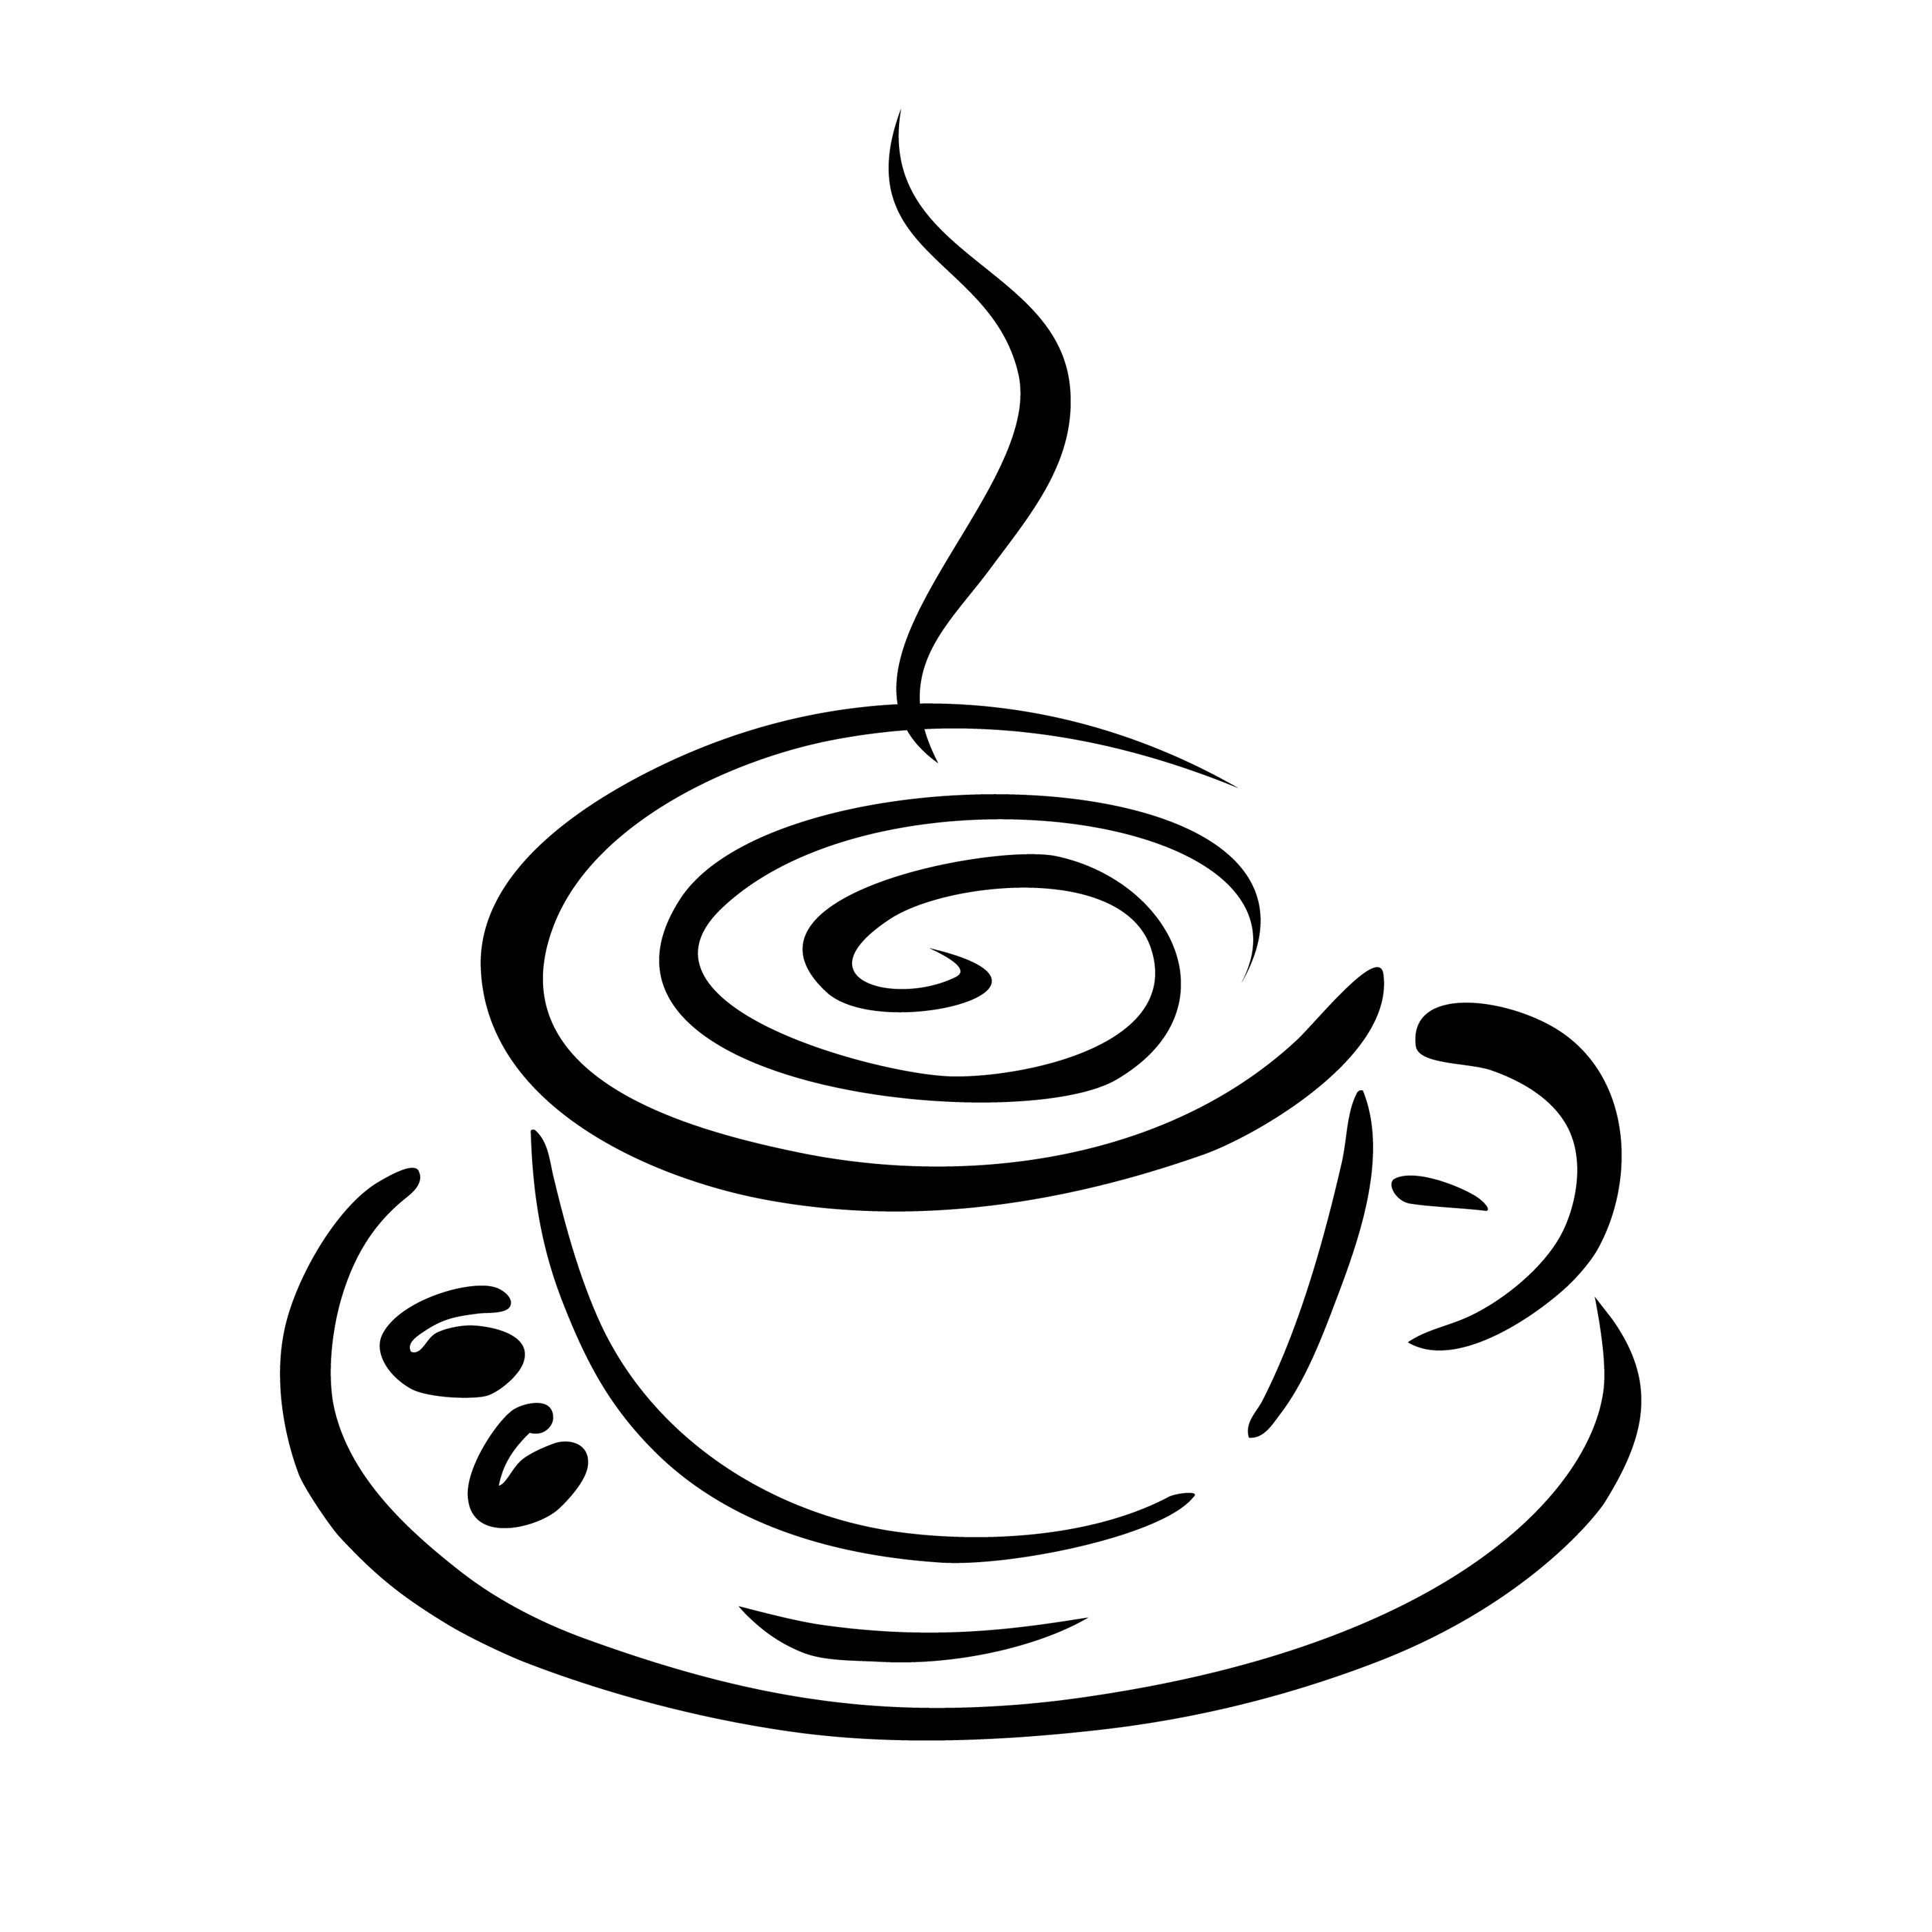 small resolution of coffee cup black and white clipart clipart kid